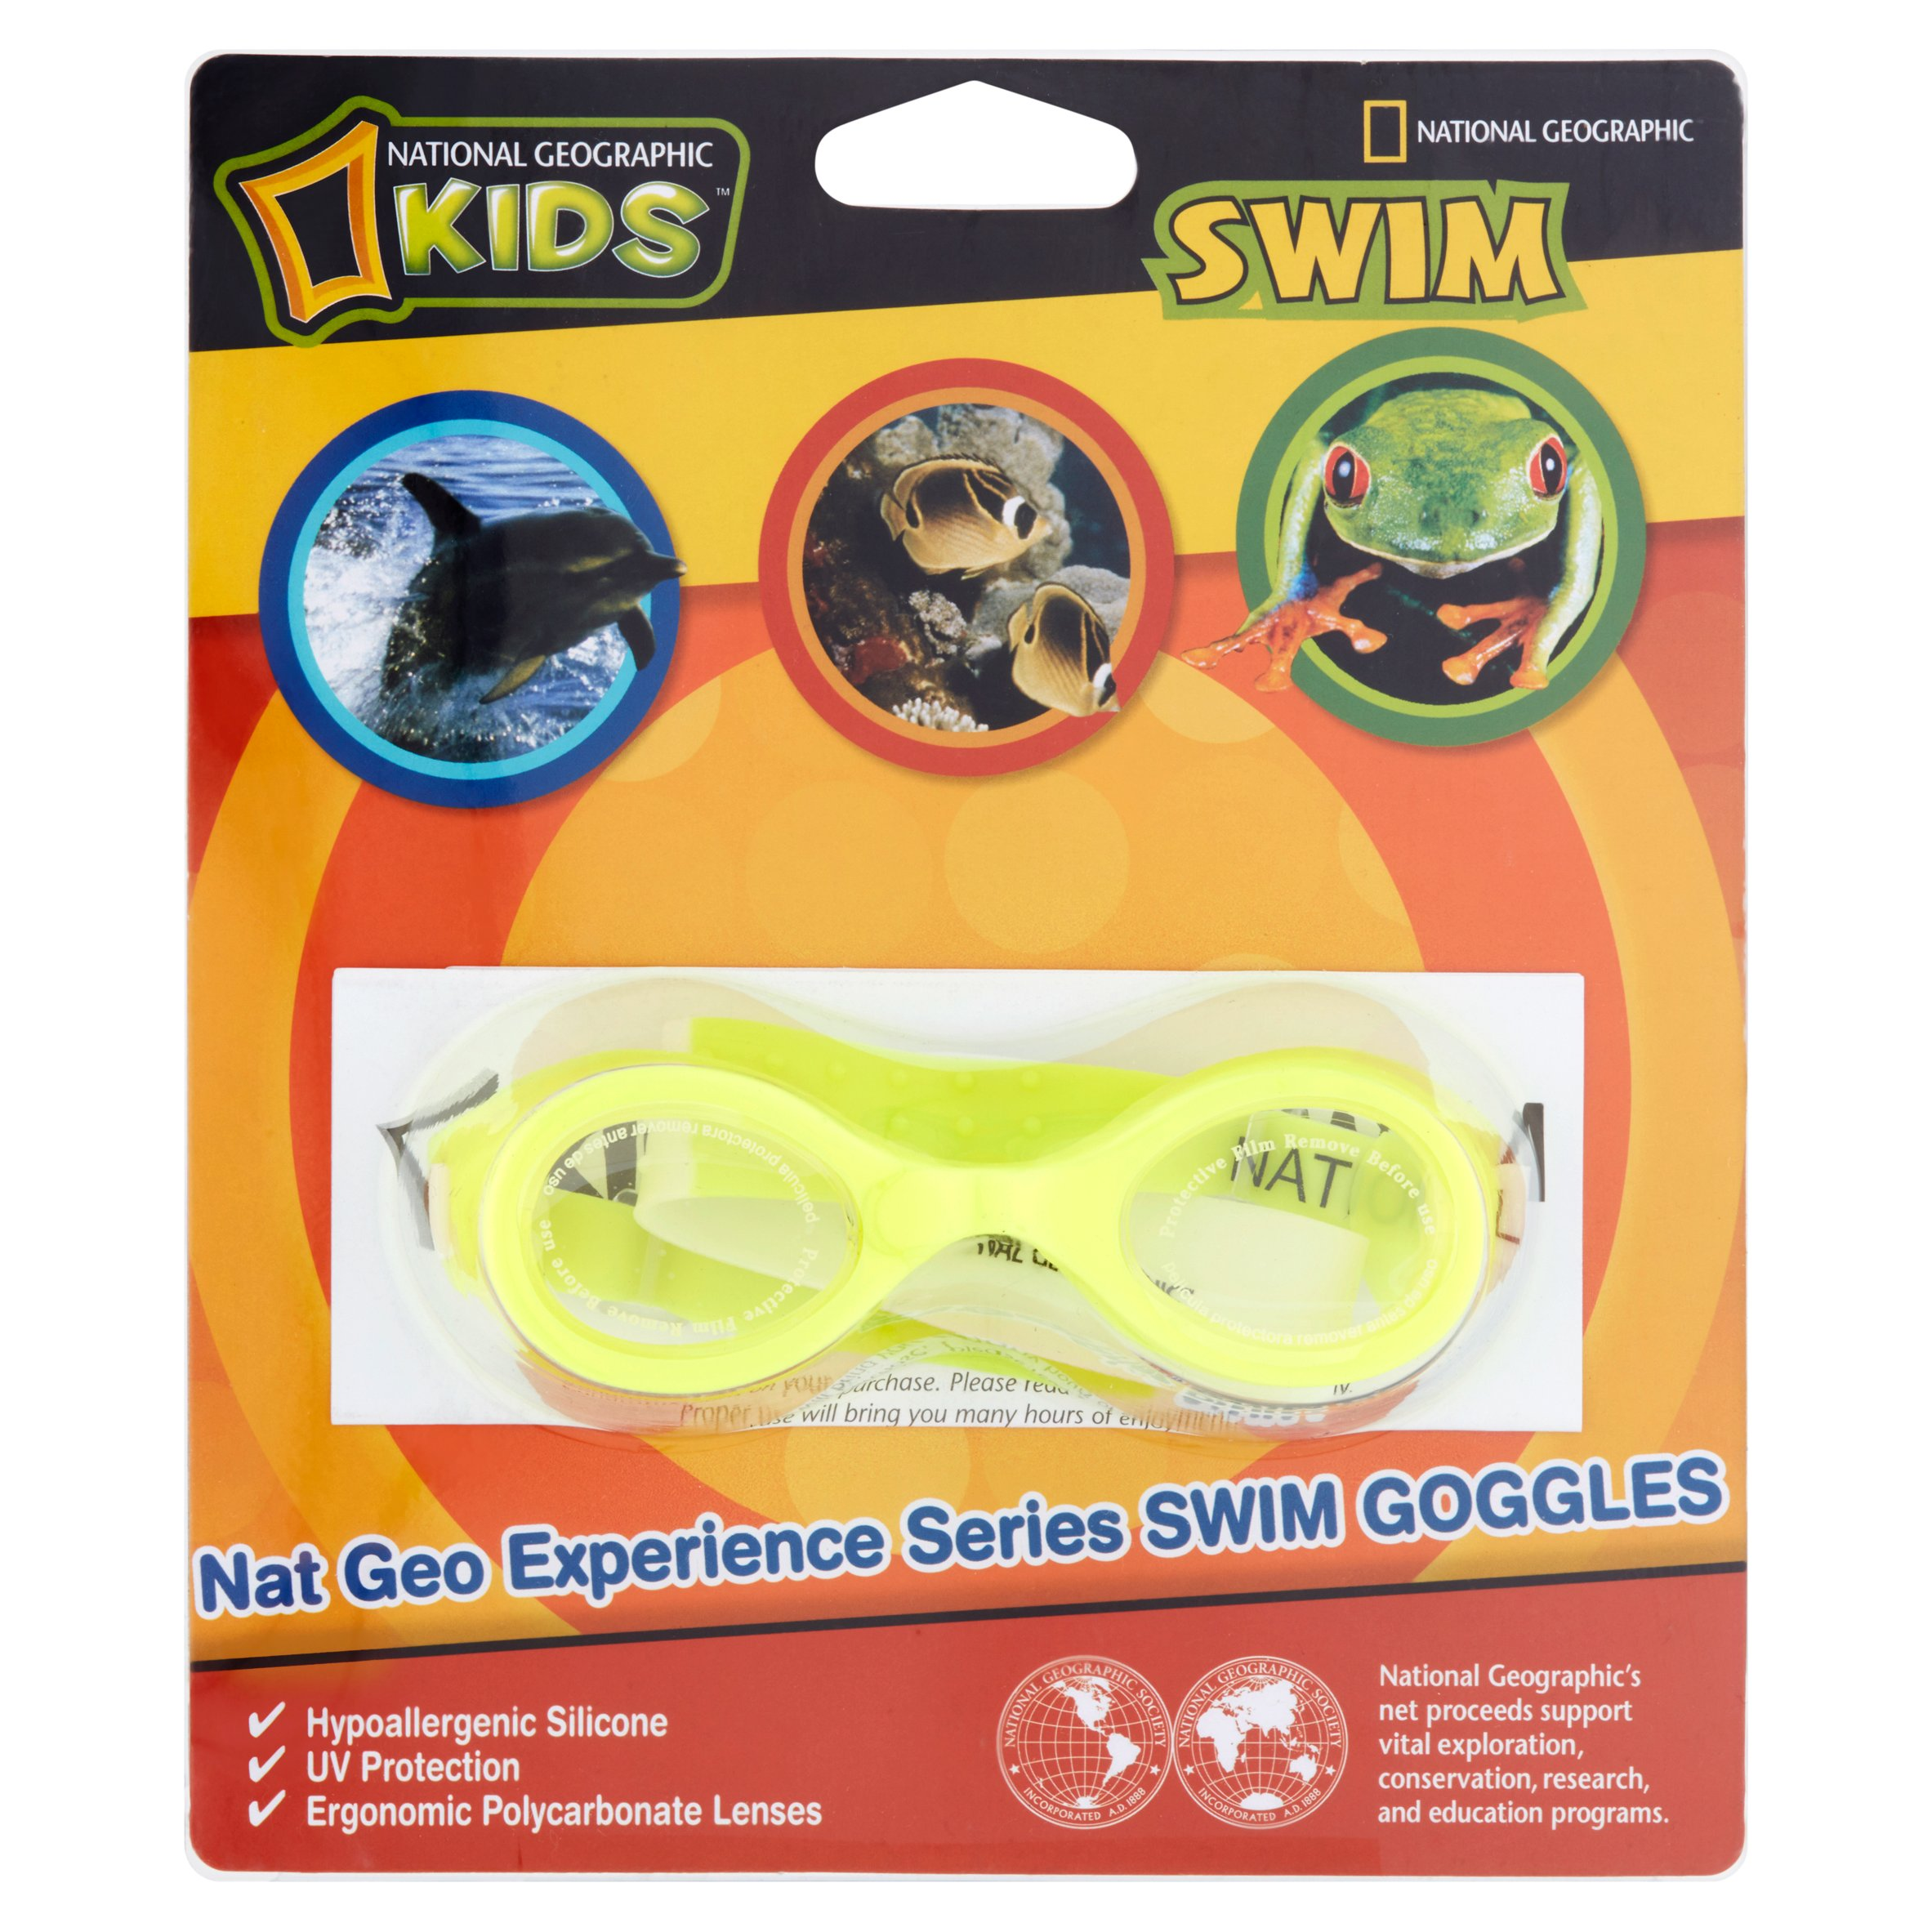 National Geographic Kids Swim Goggles by Wal-Mart Stores, Inc.